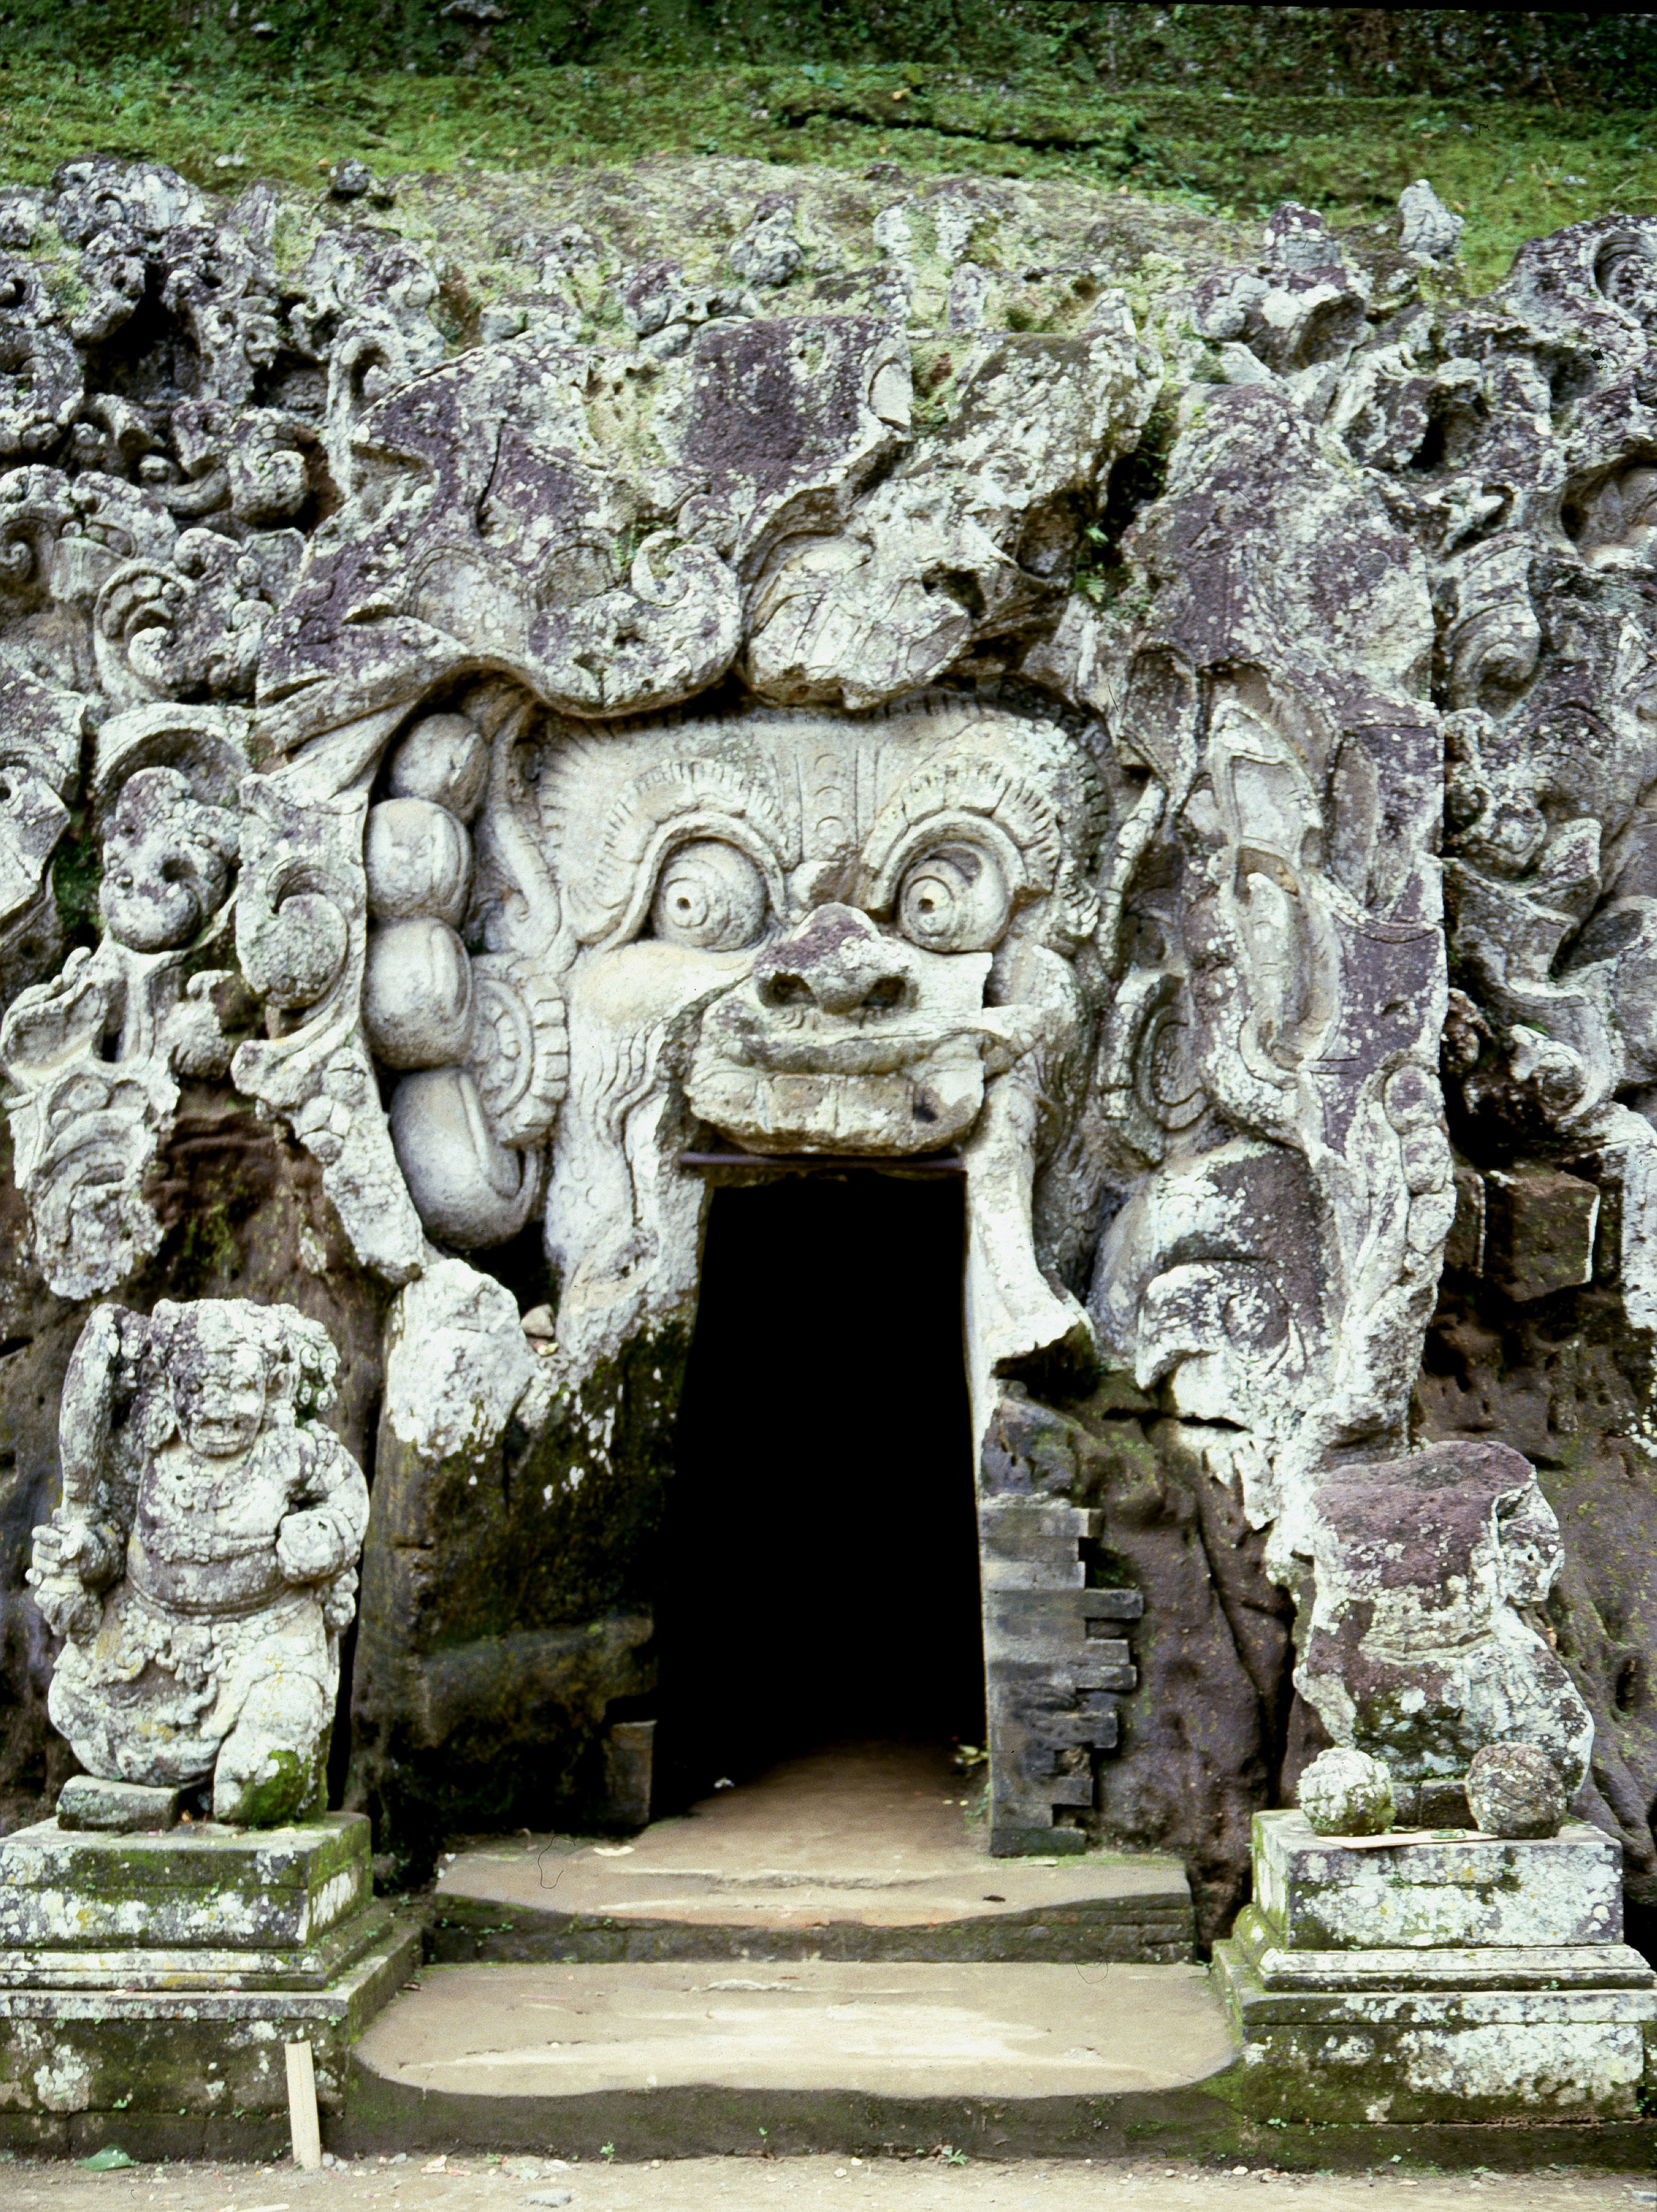 The Goa Gajah, Elephant Cave, near Bedulu. Demons guard the entrance to a cave once used as a hermitage by Siwaite monks. The demons are interpreted as a symbol of human impotence in the face of the forces of nature. Country of Origin: Indonesia. Culture: Balinese/Hindu. Date/Period: 11th Century. Place of Origin: Bedulu, Bali. Credit Line: Werner Forman Archive.